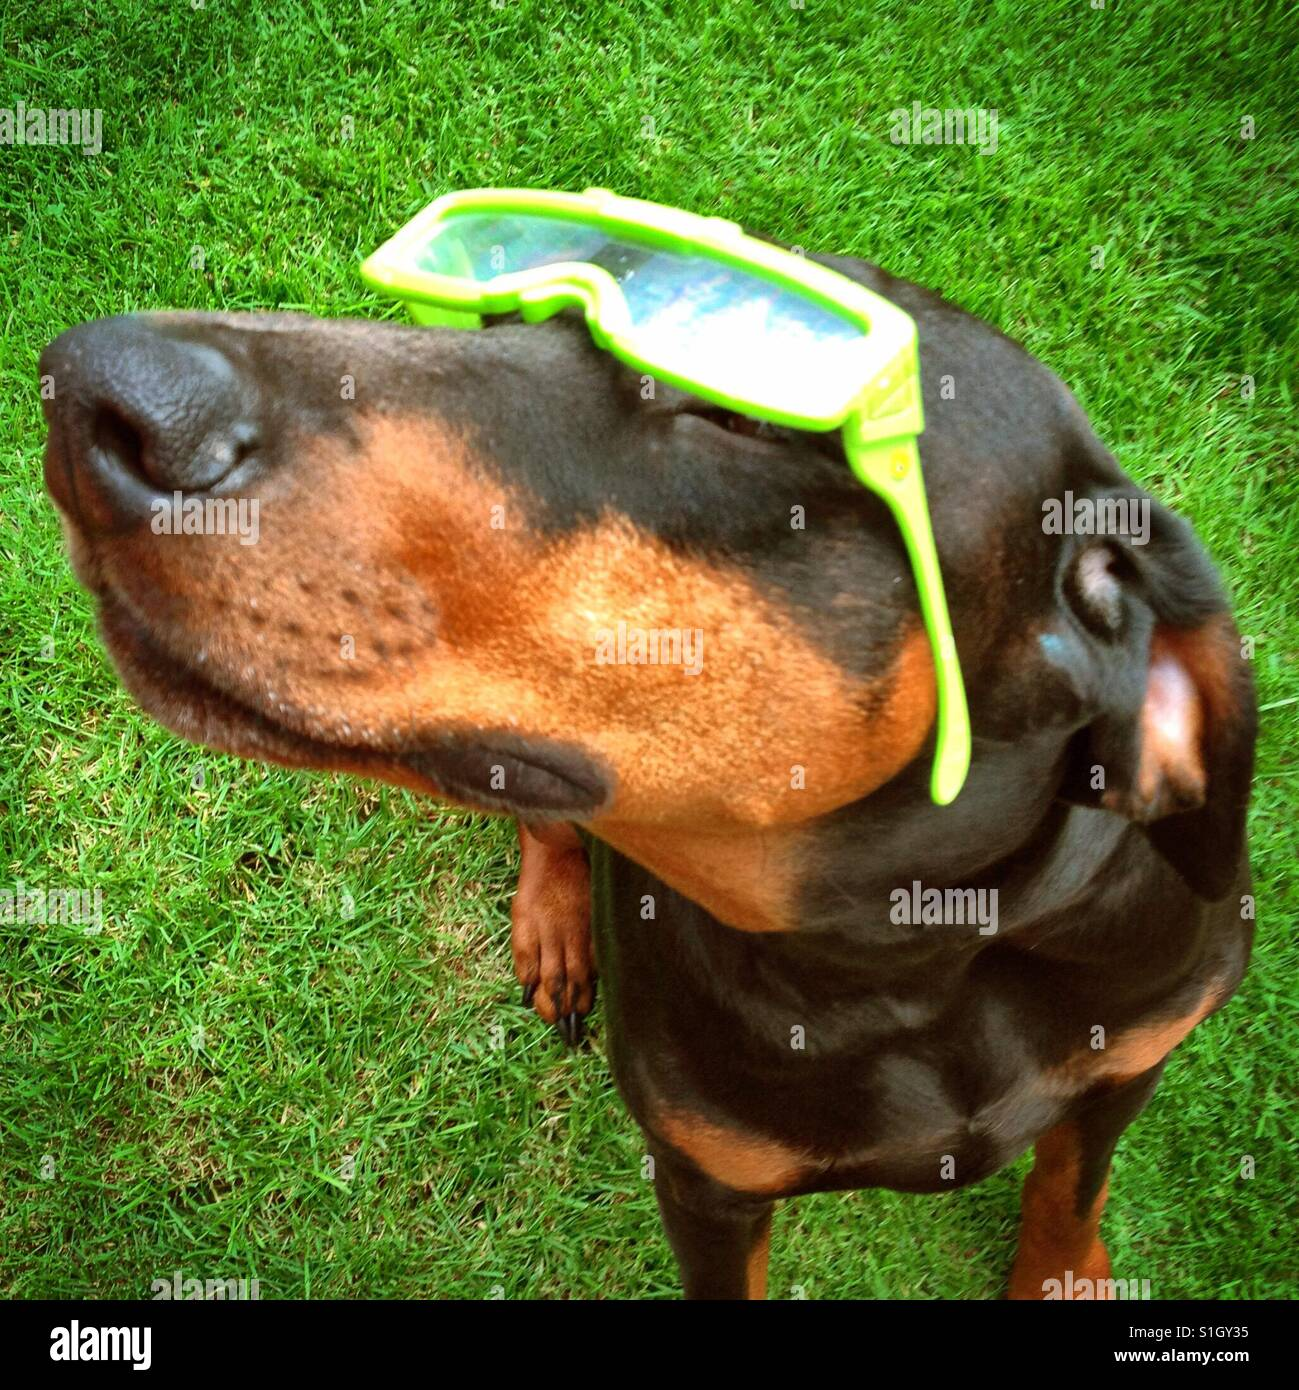 Dog (Doberman) wearing 3D style glasses in the sun - Stock Image